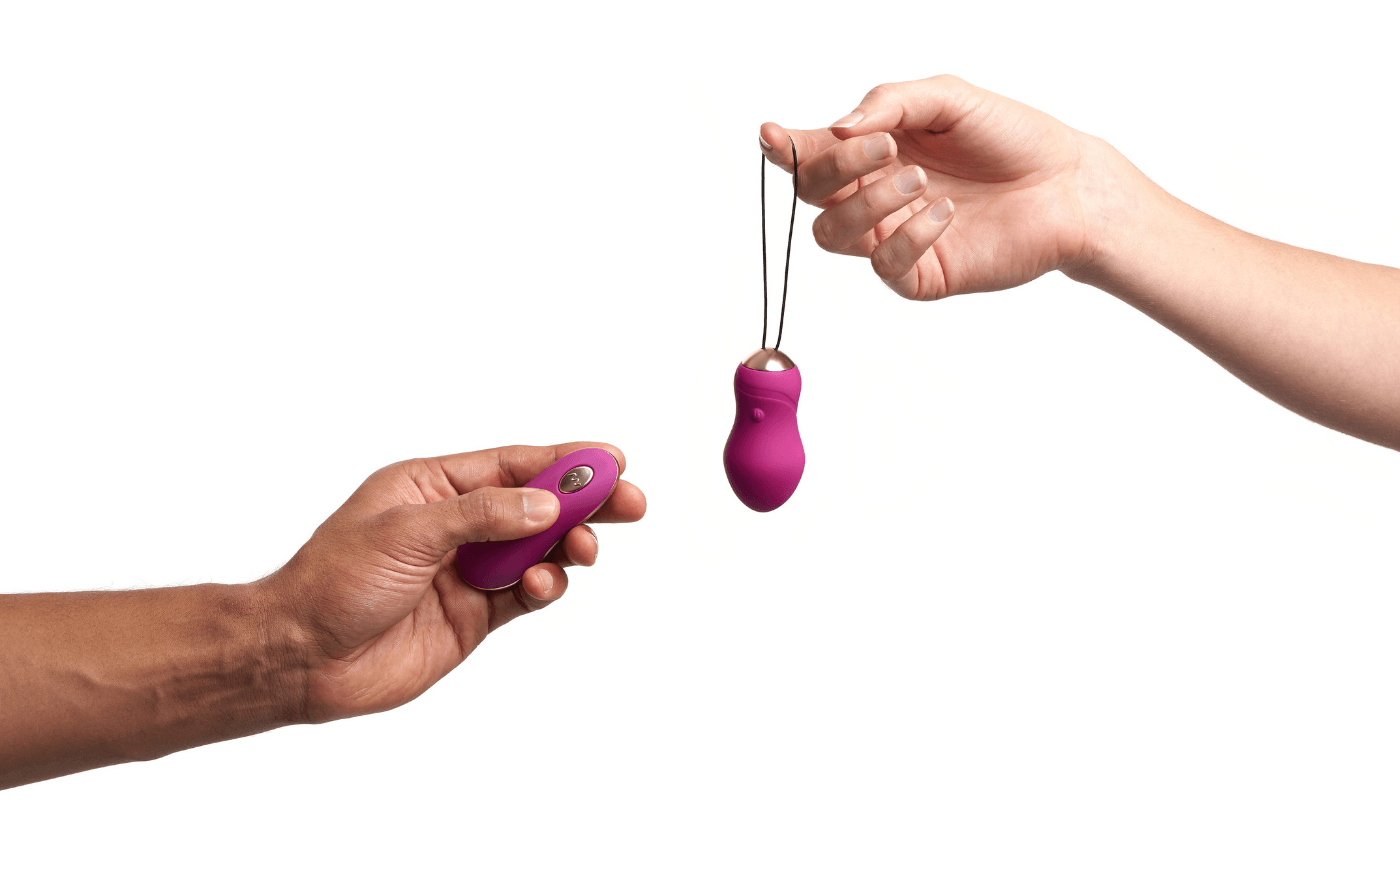 New Product Launch: So Divine 'Addicted' Vibrating Love Egg